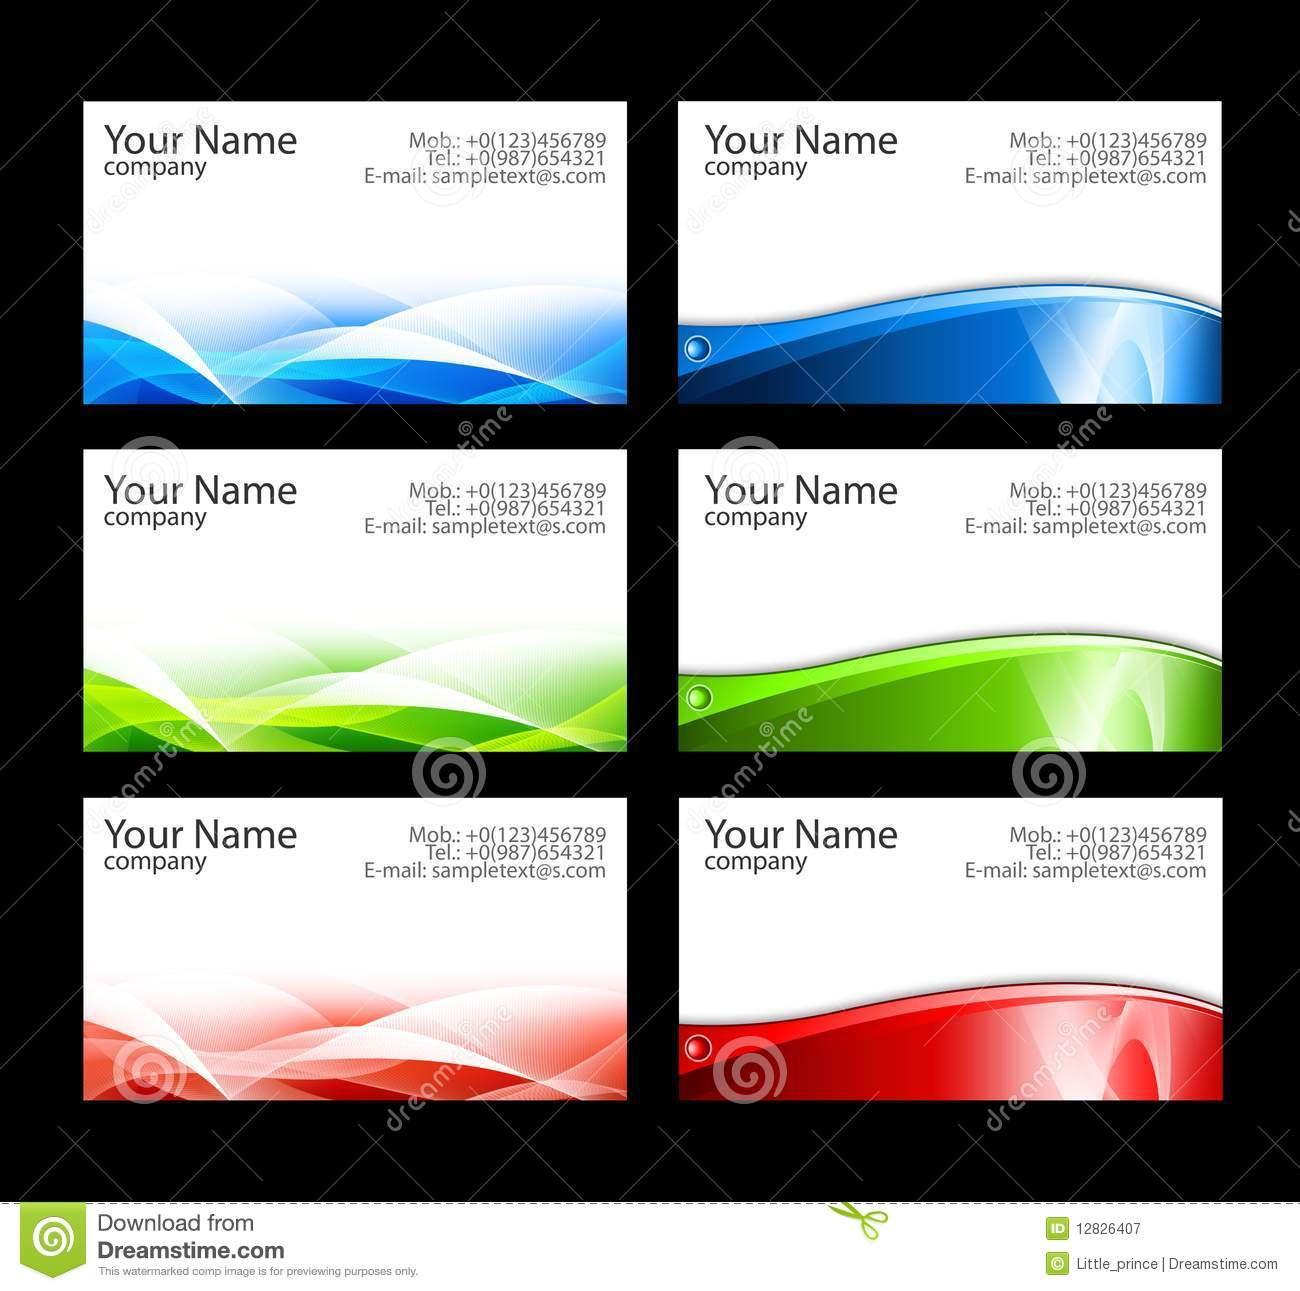 Business Cards Templates Royalty Free Stock Photography - Image ...